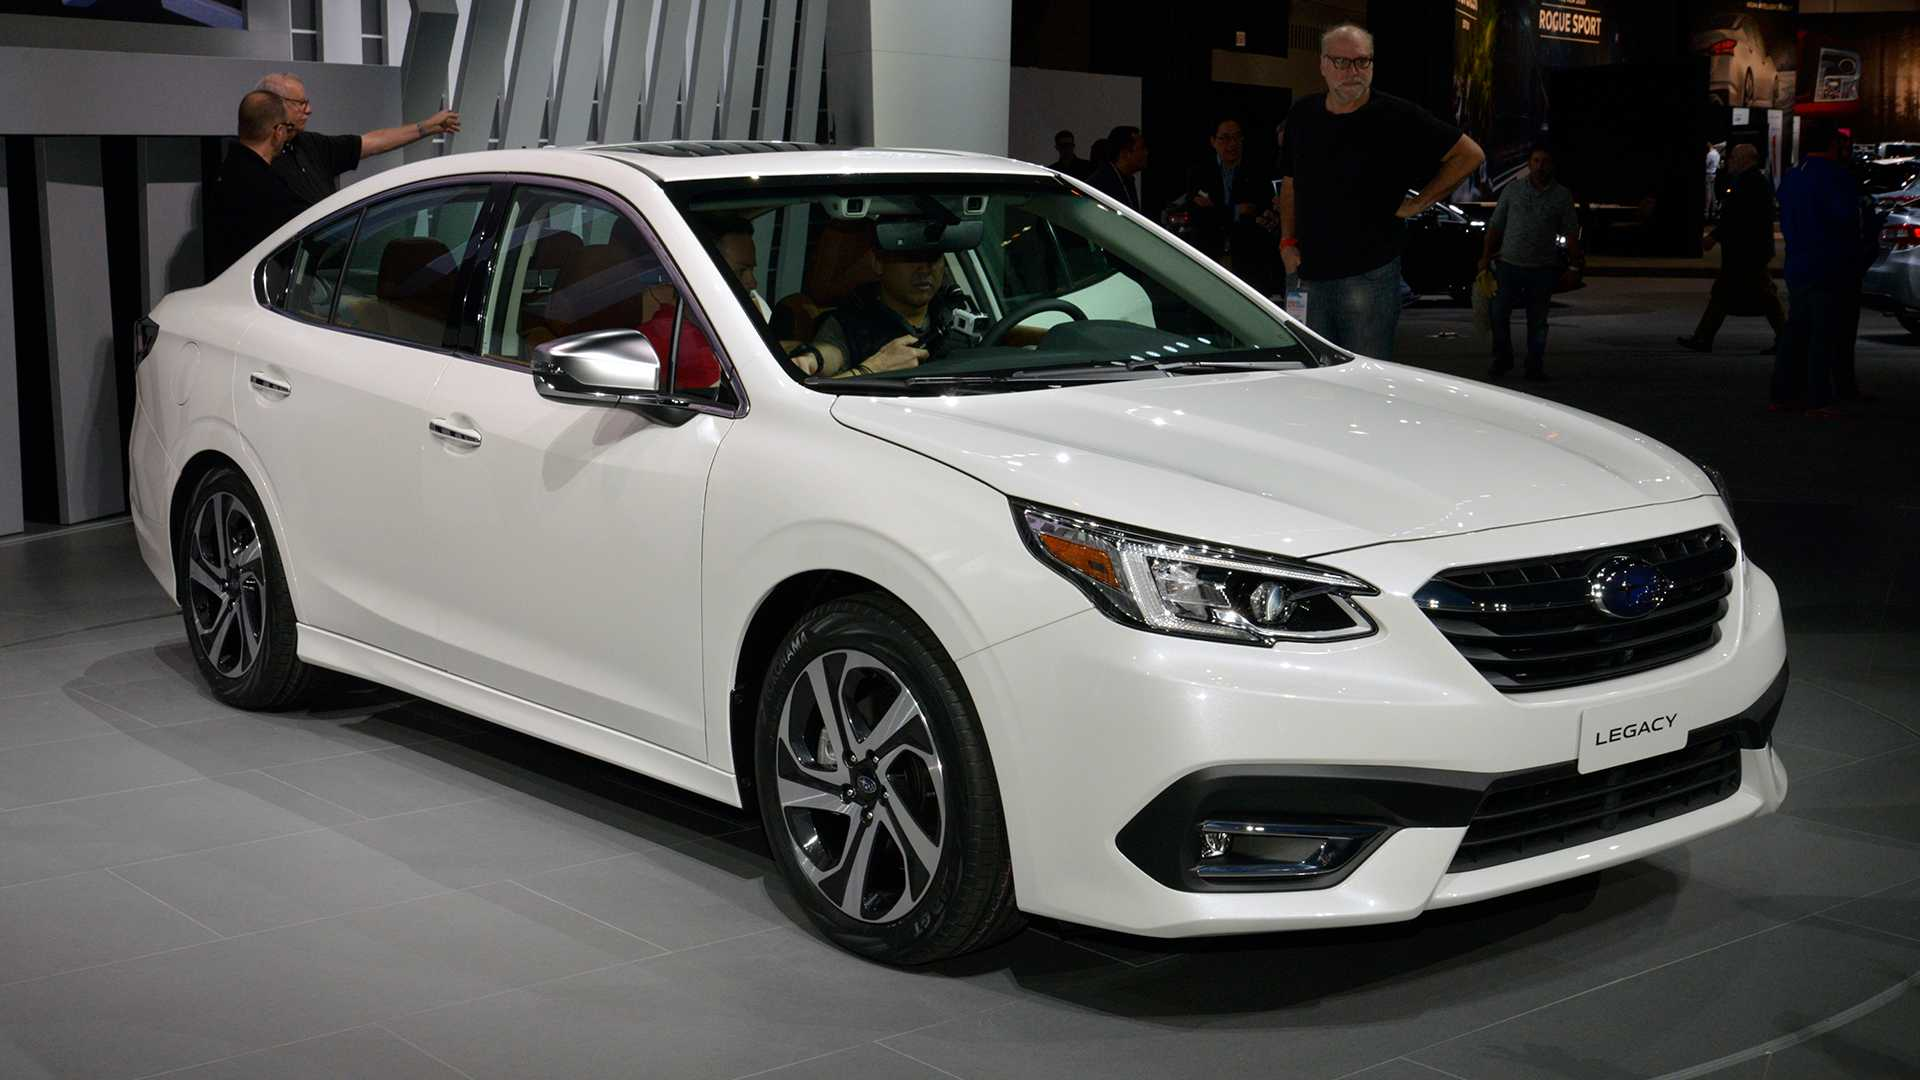 65 The Best 2020 Subaru Lineup Configurations